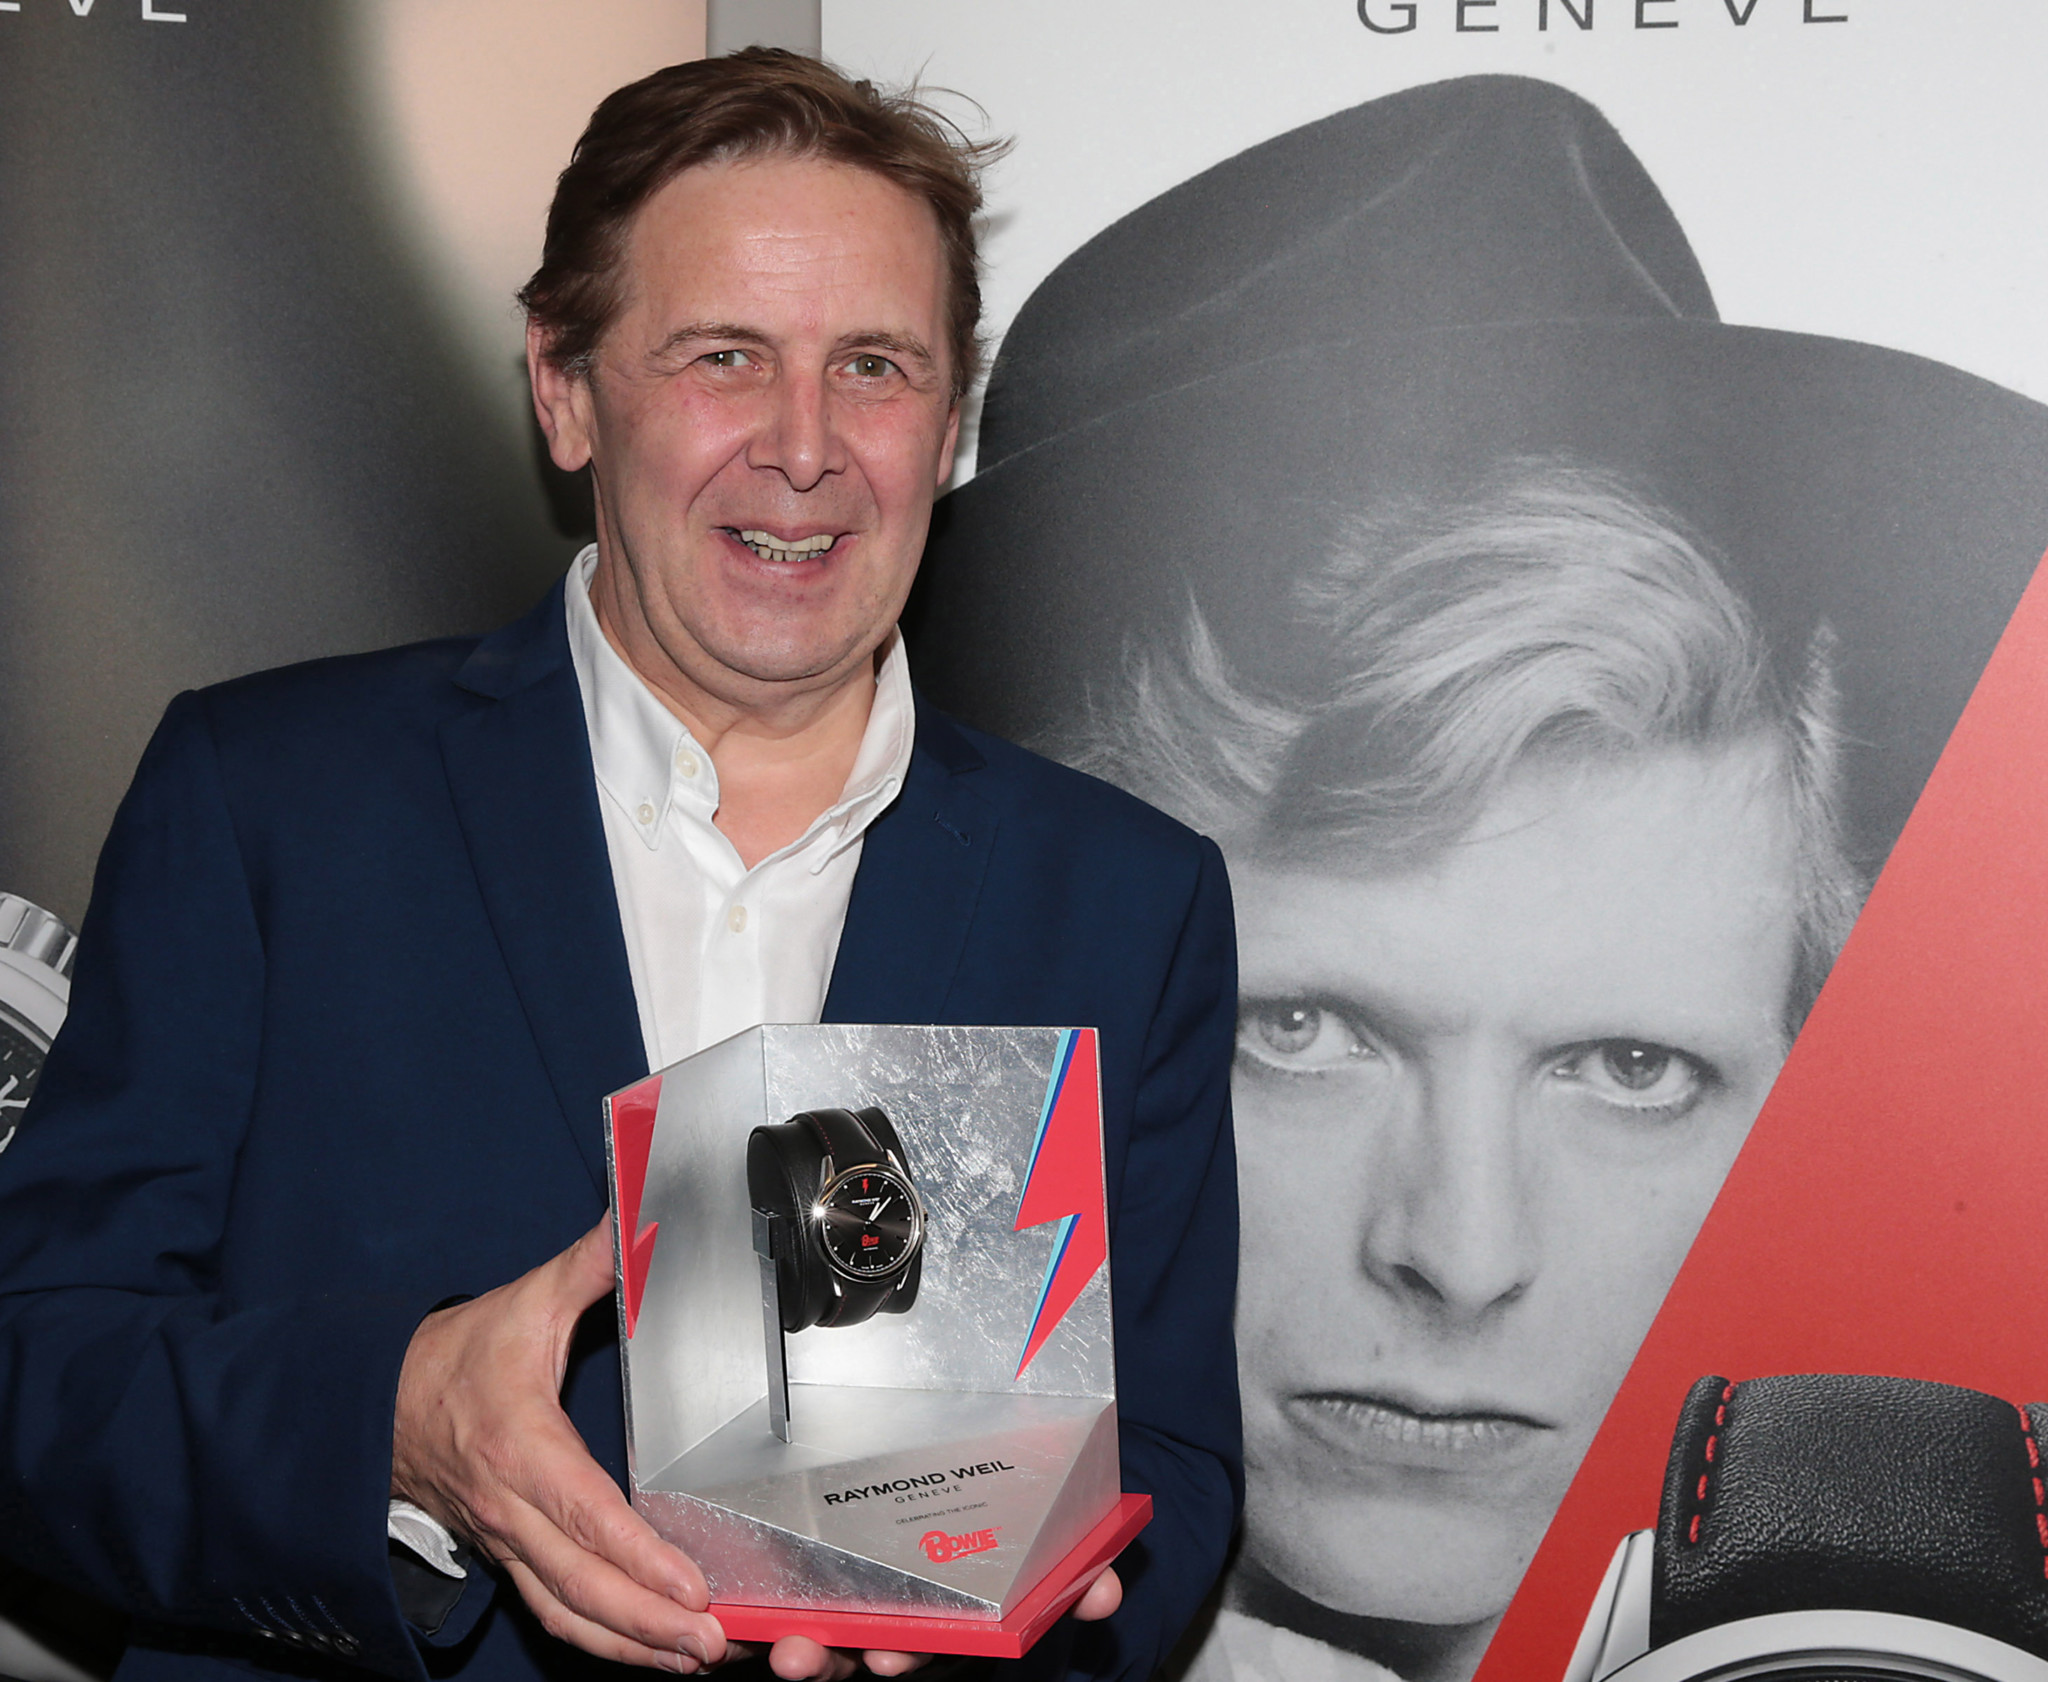 Ian Dempsey was presented with a Raymond Weil Limited Edition freelancer David Bowie watch.